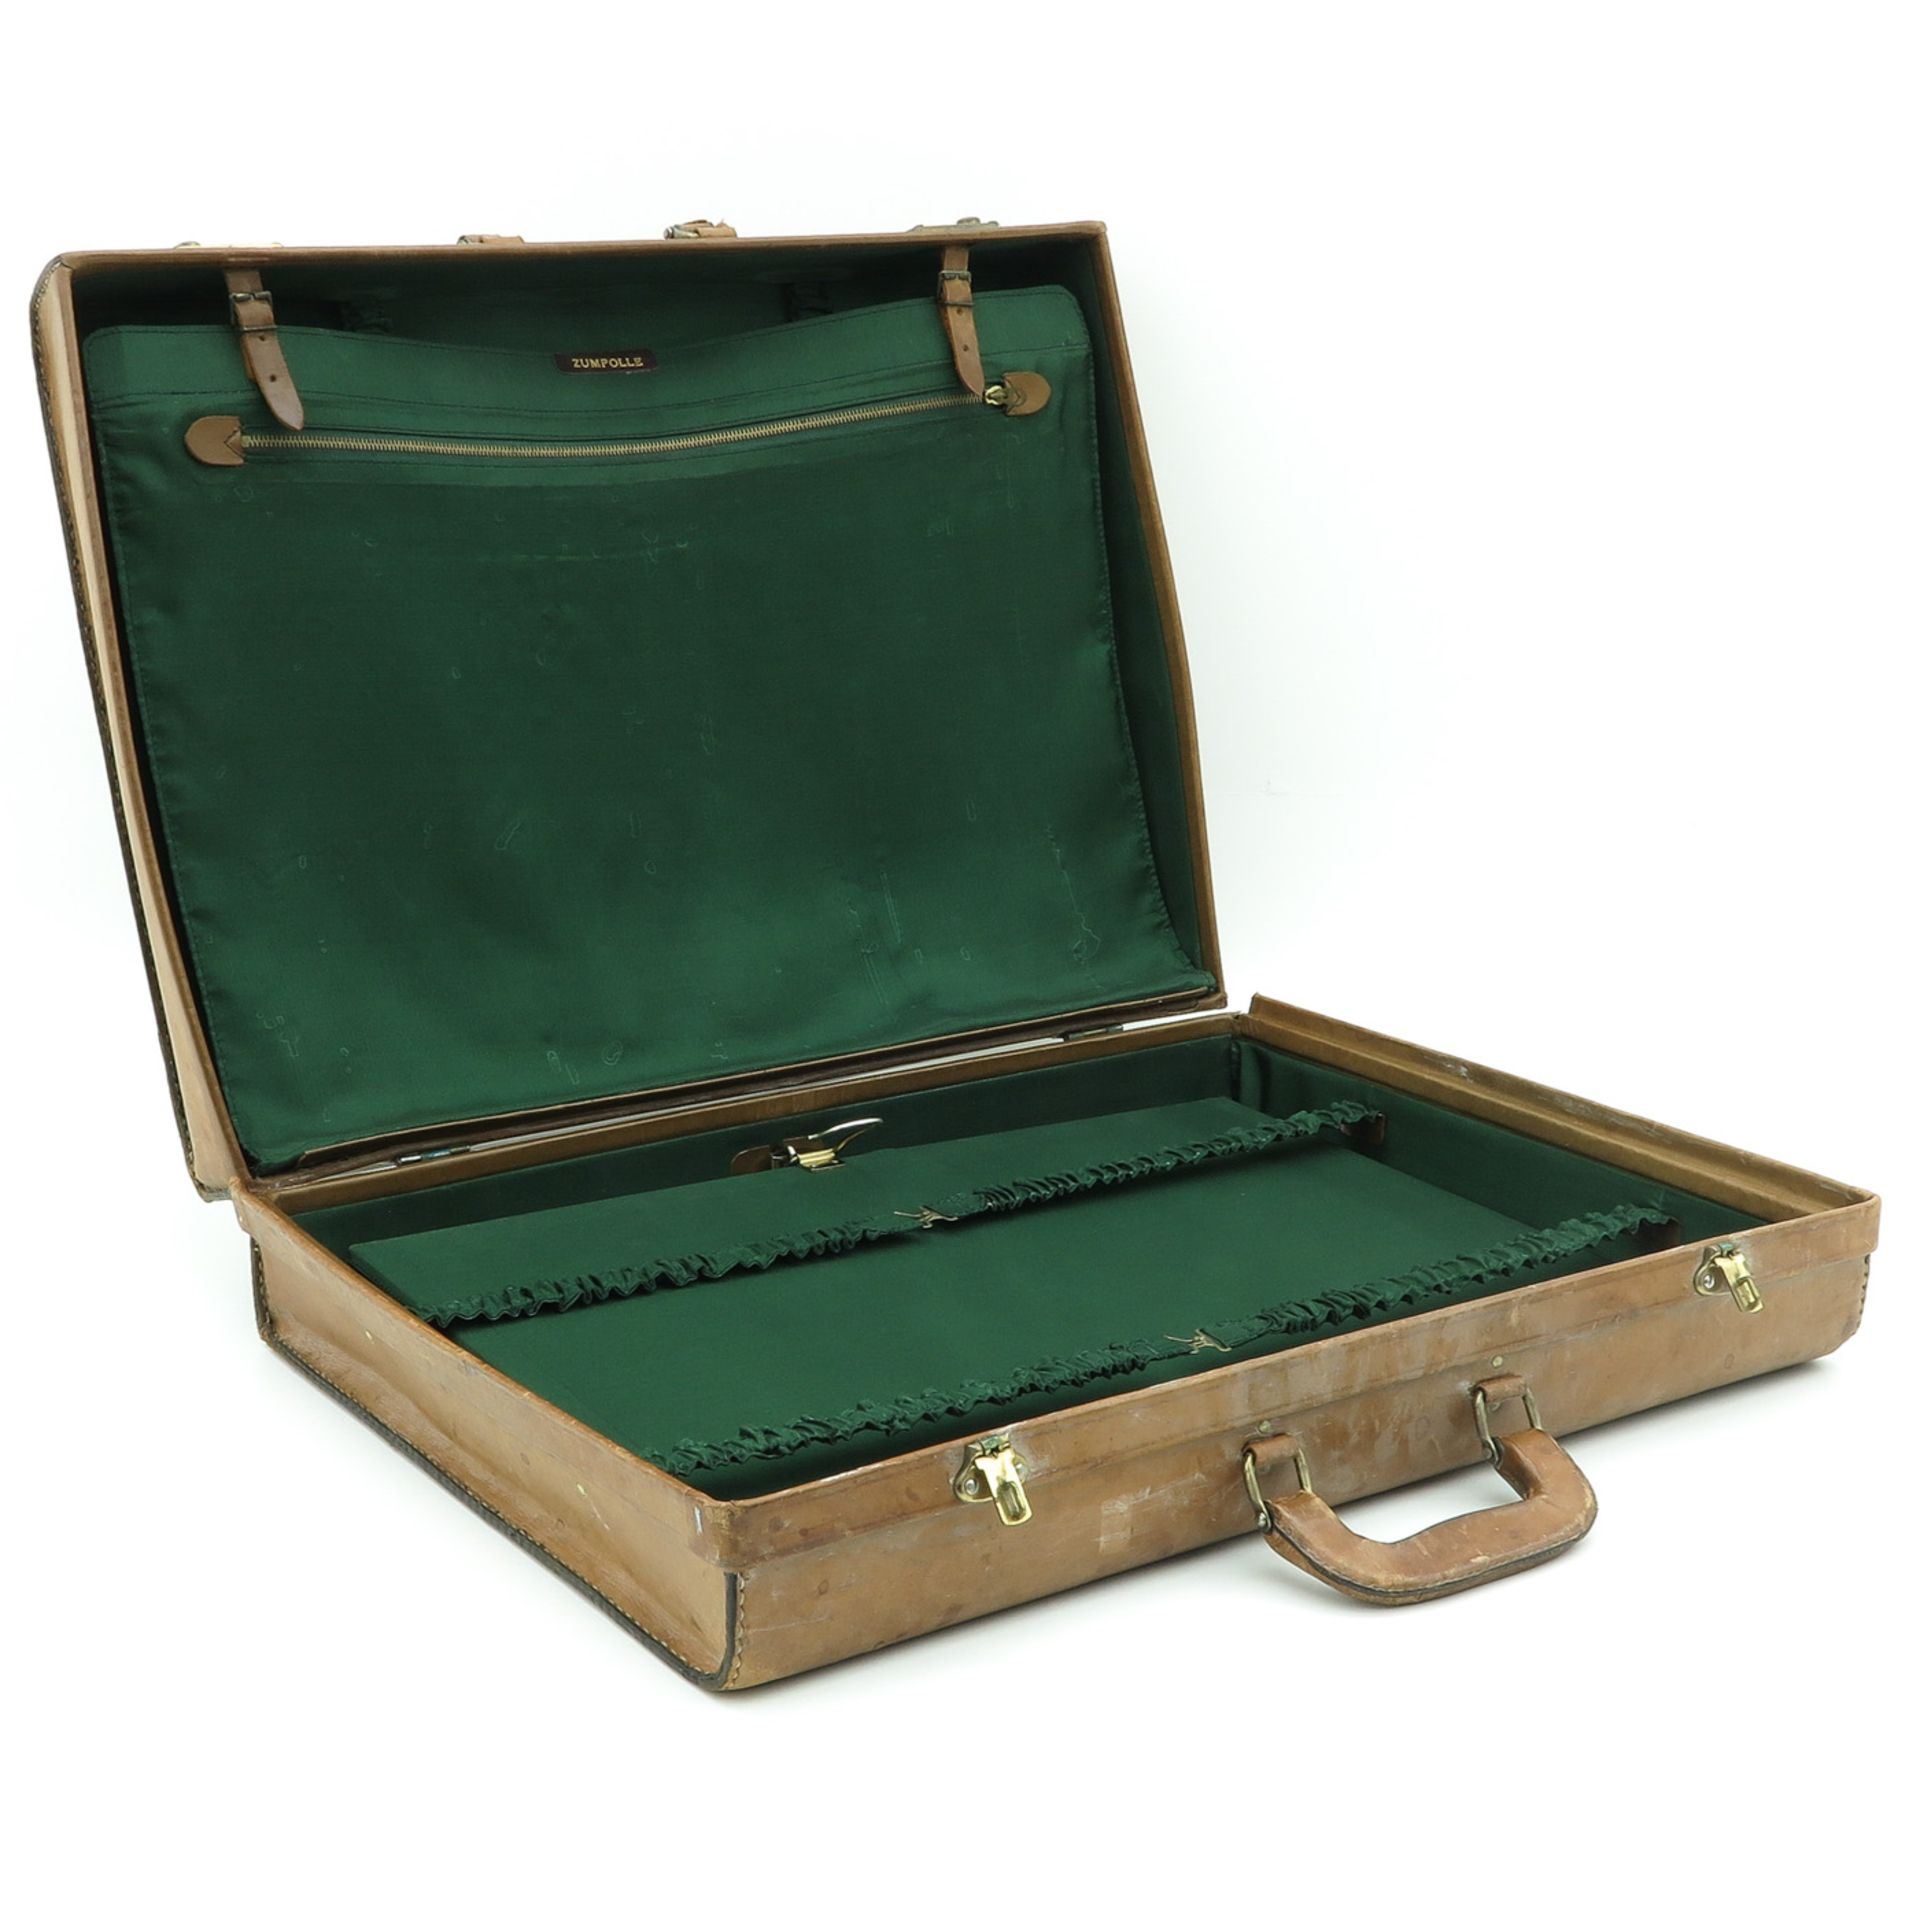 Los 1001 - A Vintage Leather Case and Antique Koala Beer